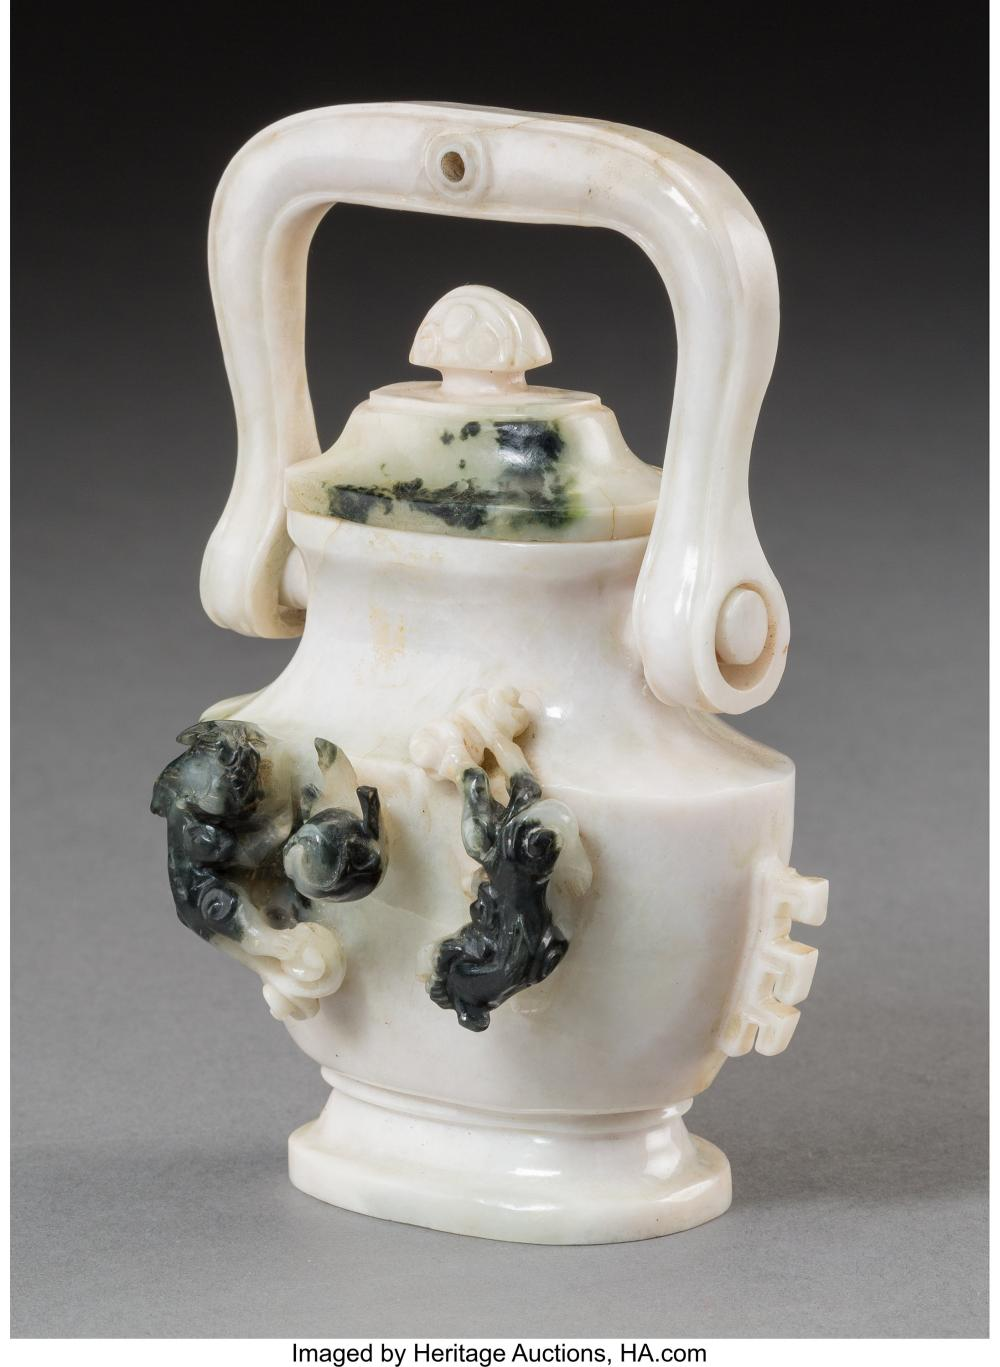 Lot 21282: A Chinese Carved White Jade Handled Urn 4-5/8 x 3-1/2 x 1-3/4 inches (11.7 x 8.9